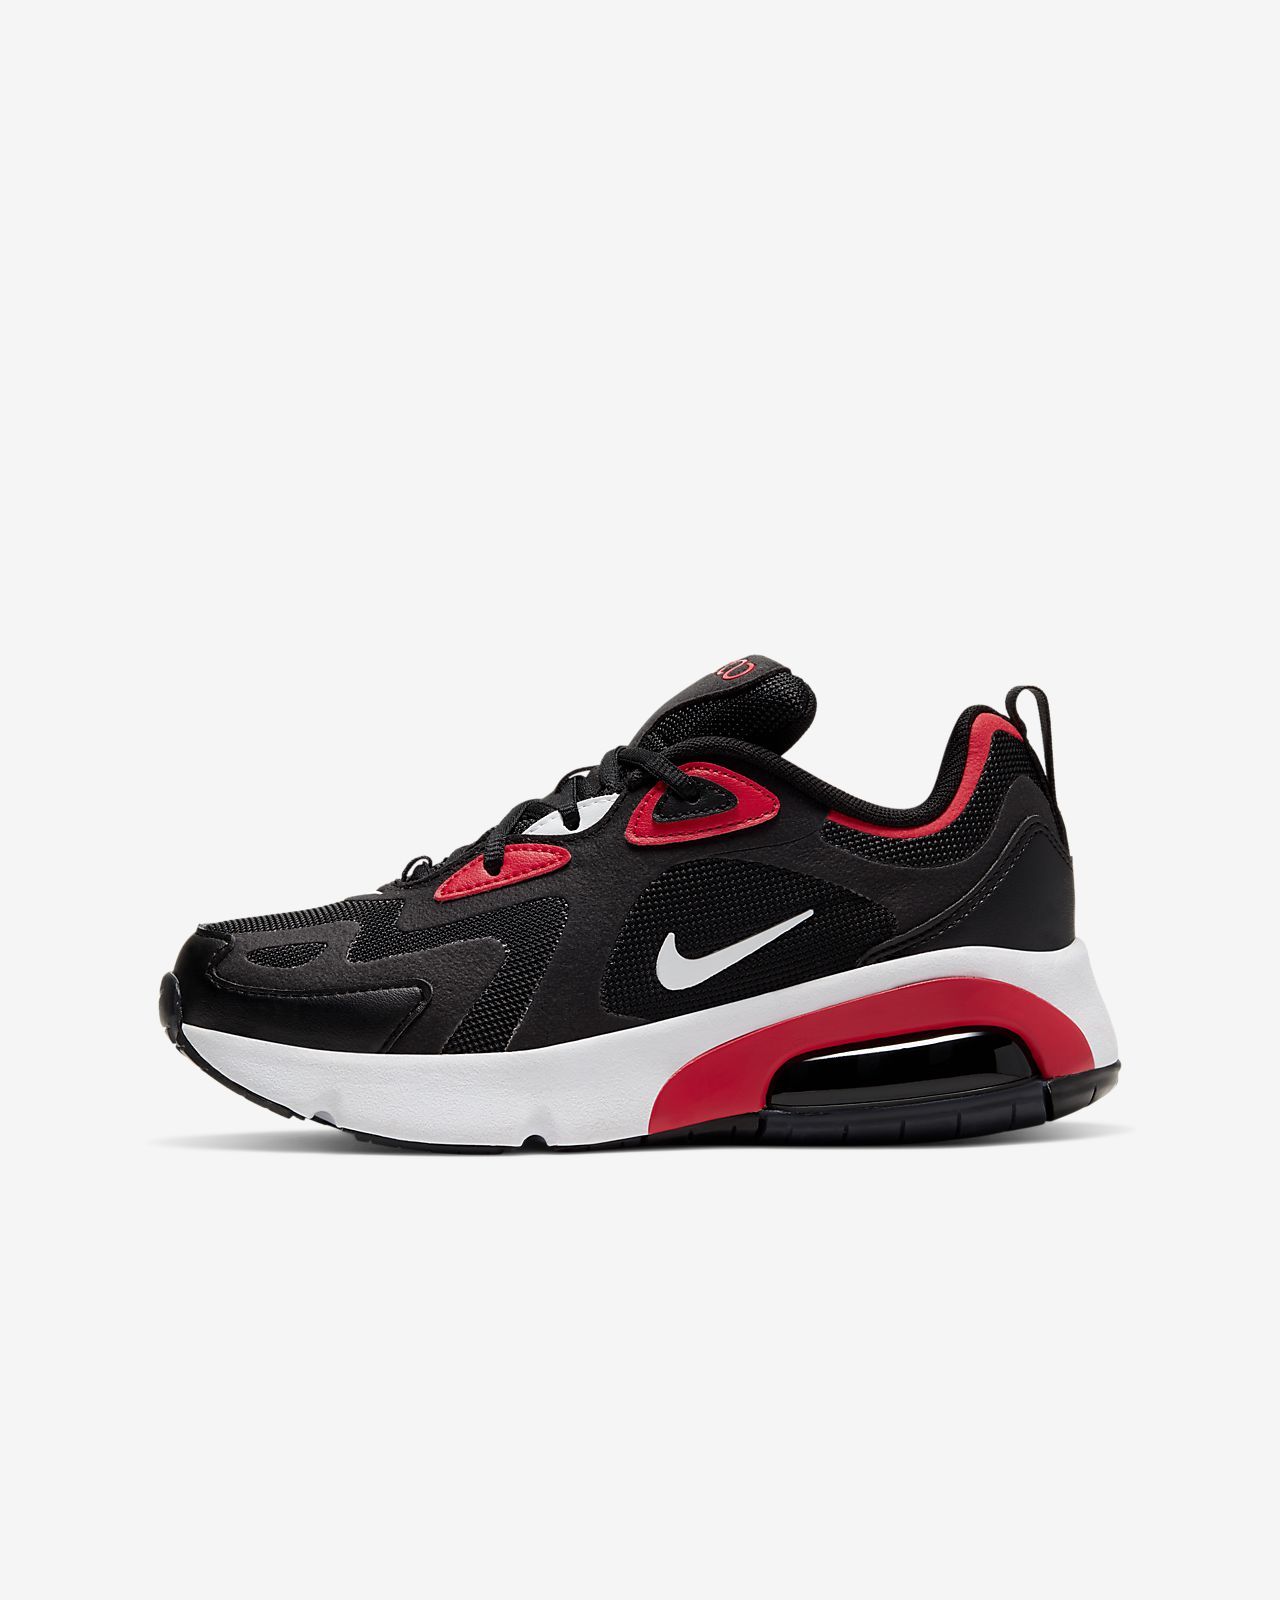 nike air max 200 rouge et blanche